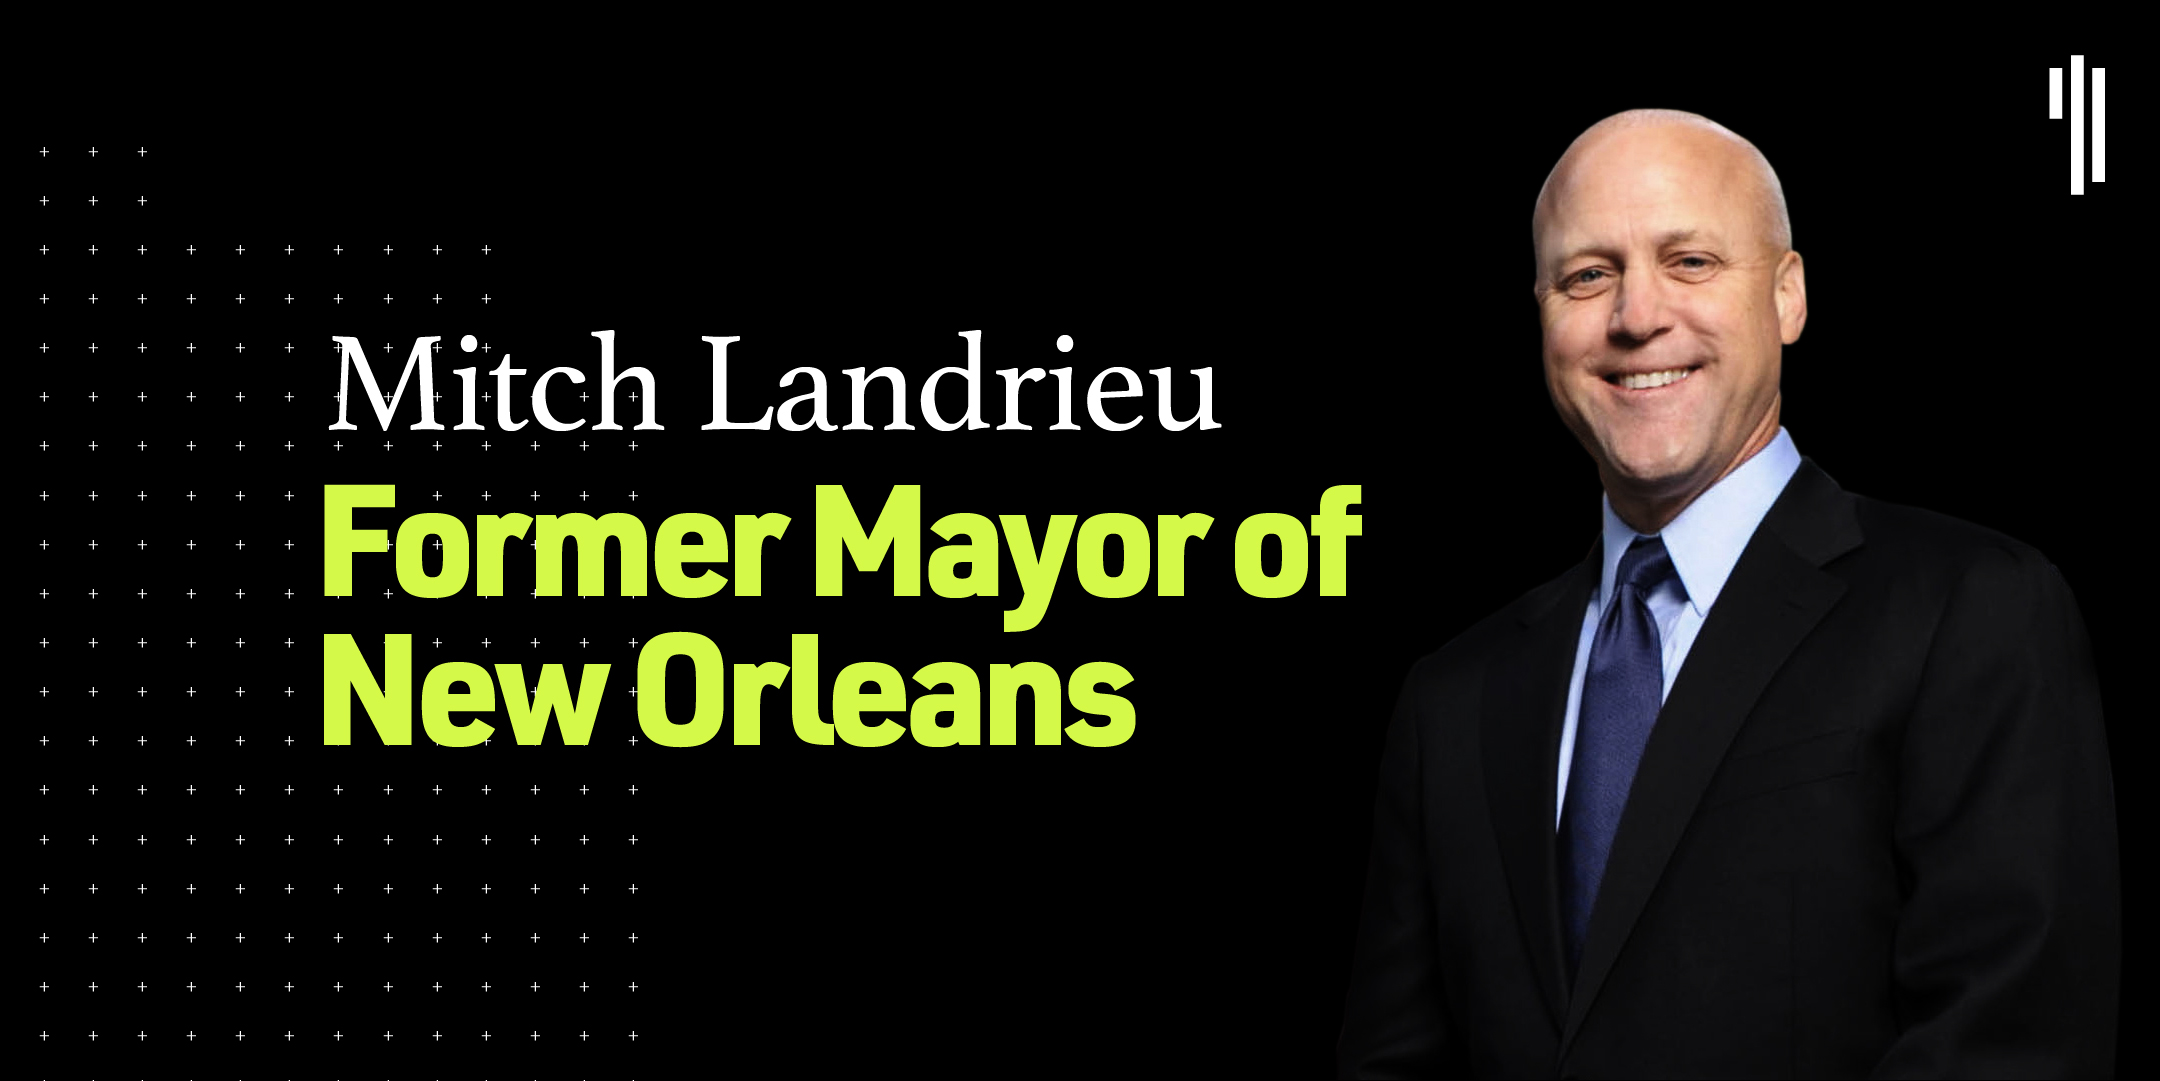 Mitch Landrieu is the Former Mayor of New Orleans